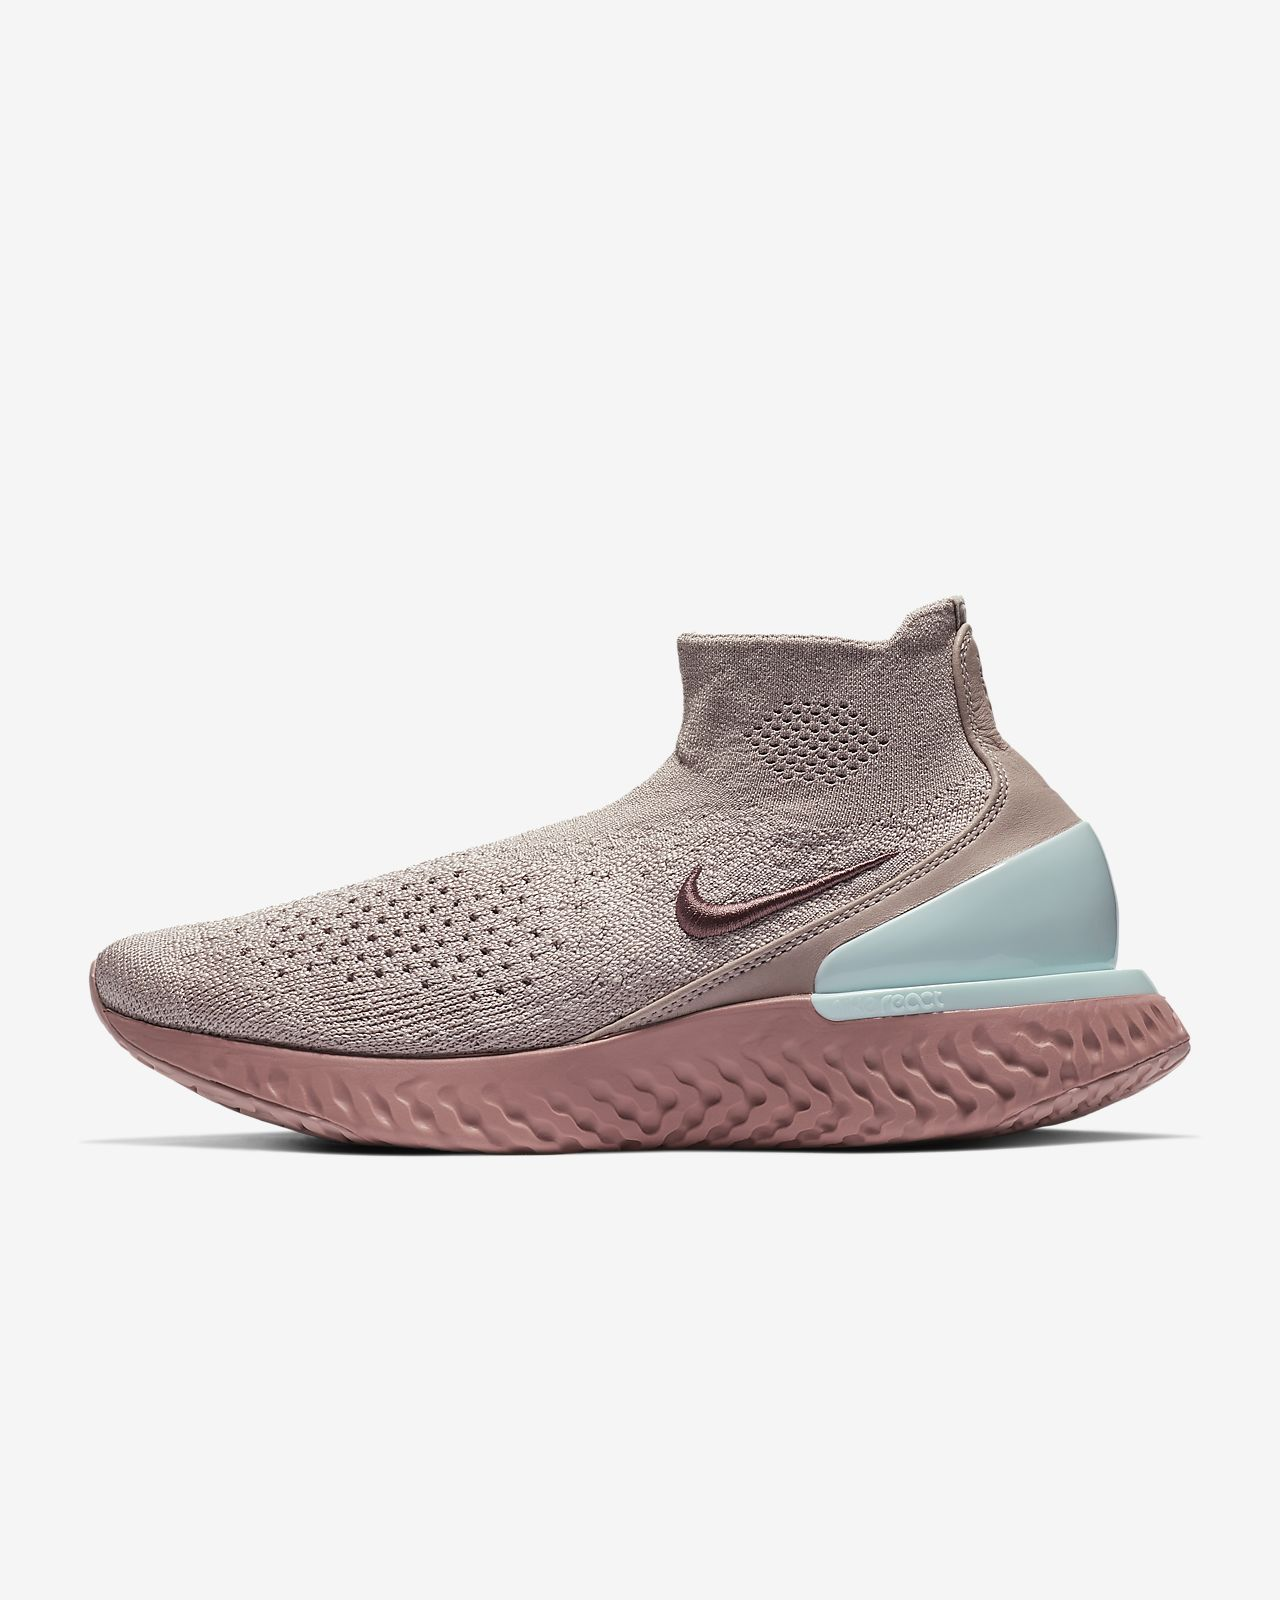 check out 5803a 845a6 Nike Rise React Flyknit